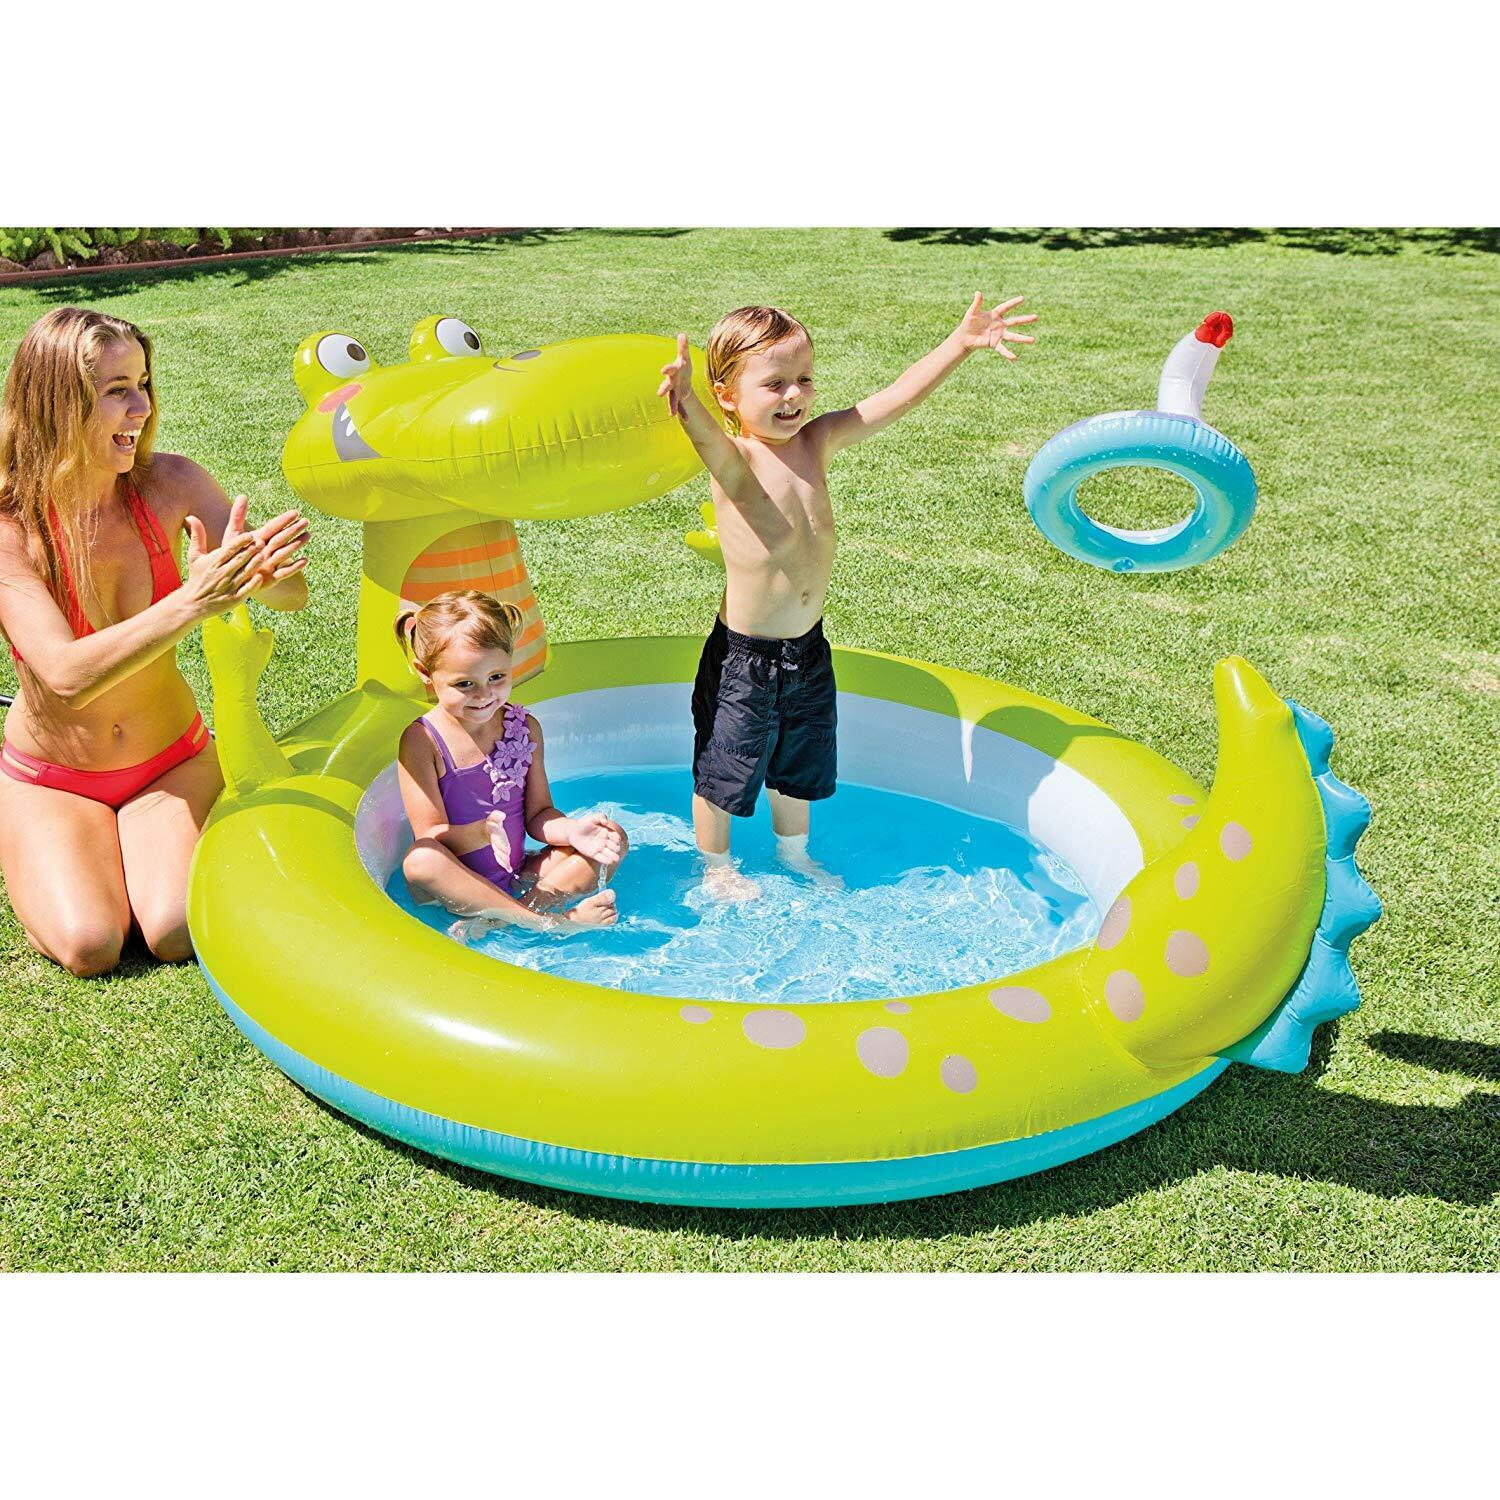 Intex 57431NP Pool Inflatable Alligator 198x160x91cm, 170 Litres With Sprayer